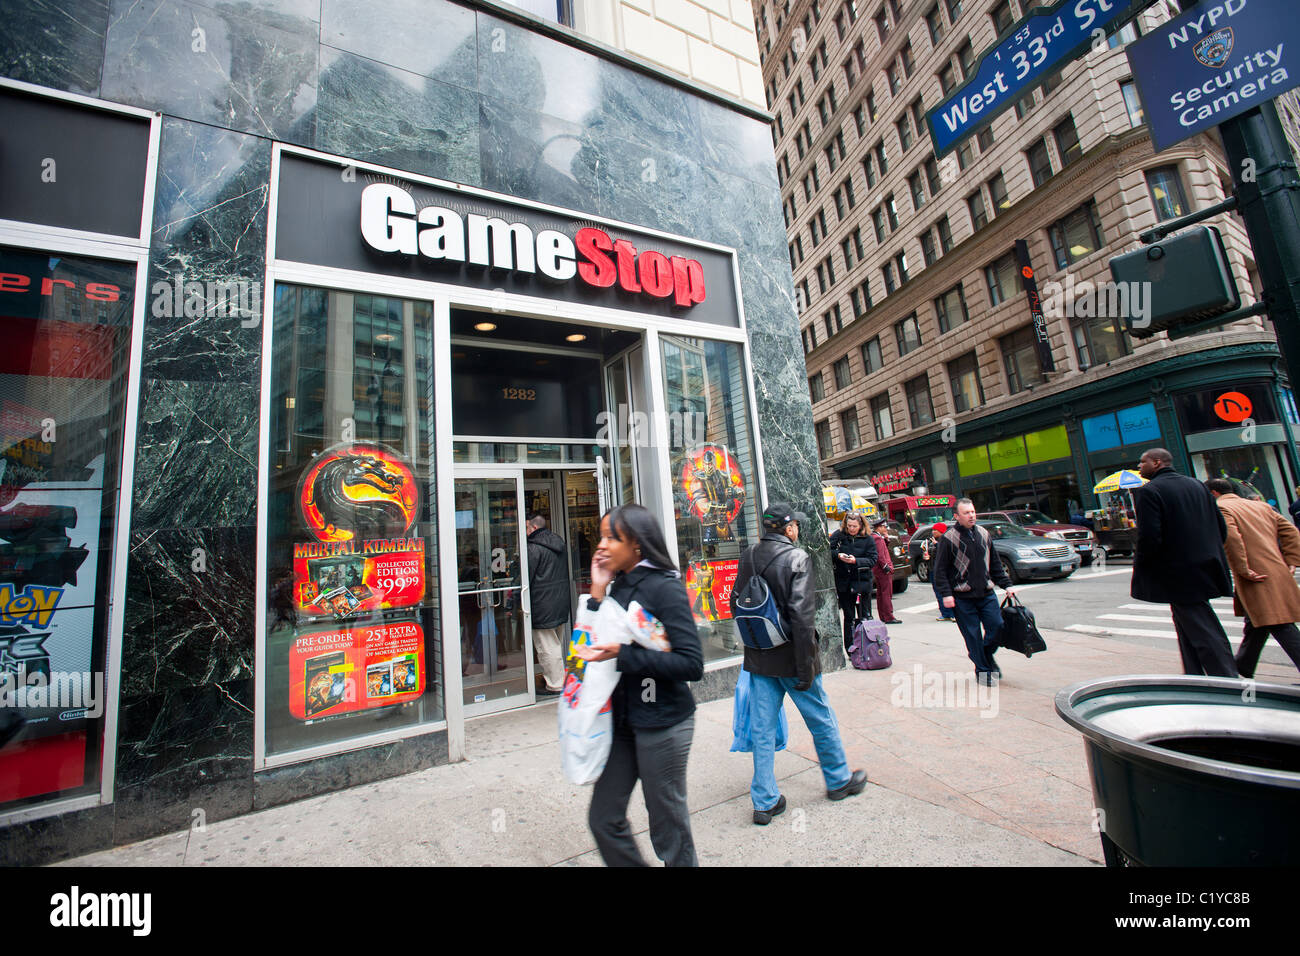 A gamestop video game store in the herald square shopping district in new york